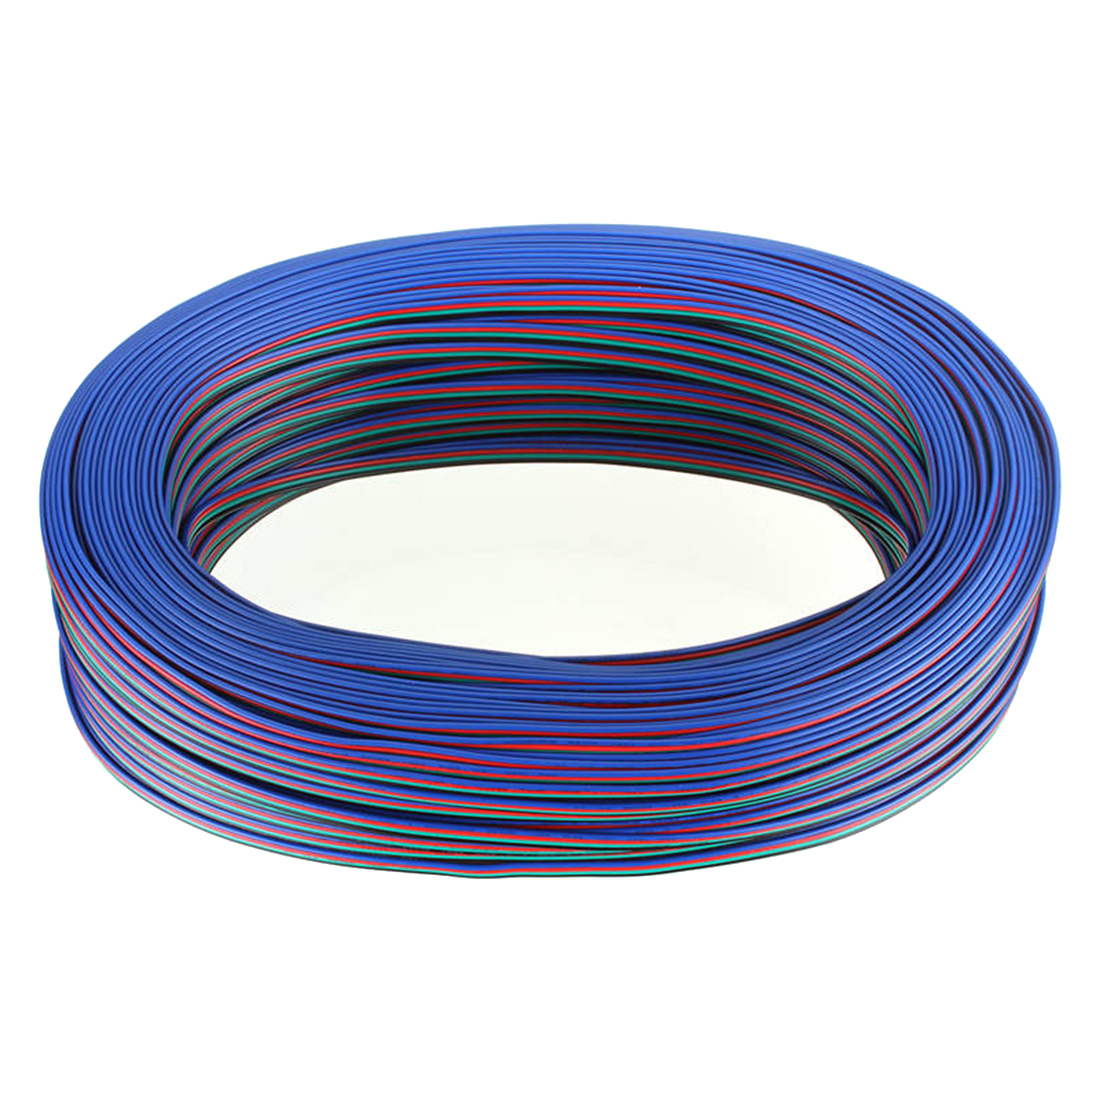 4 PIN RGB Extension 4 Wire Cable Cord 3528/5050 RGB LED Strip Light 100M Blue red LED RGB cable to signal transmission amplifier 10pcs 5 pin led strip wire connector for 12mm 5050 rgbw rgby ip20 non waterproof led strip to wire connection terminals